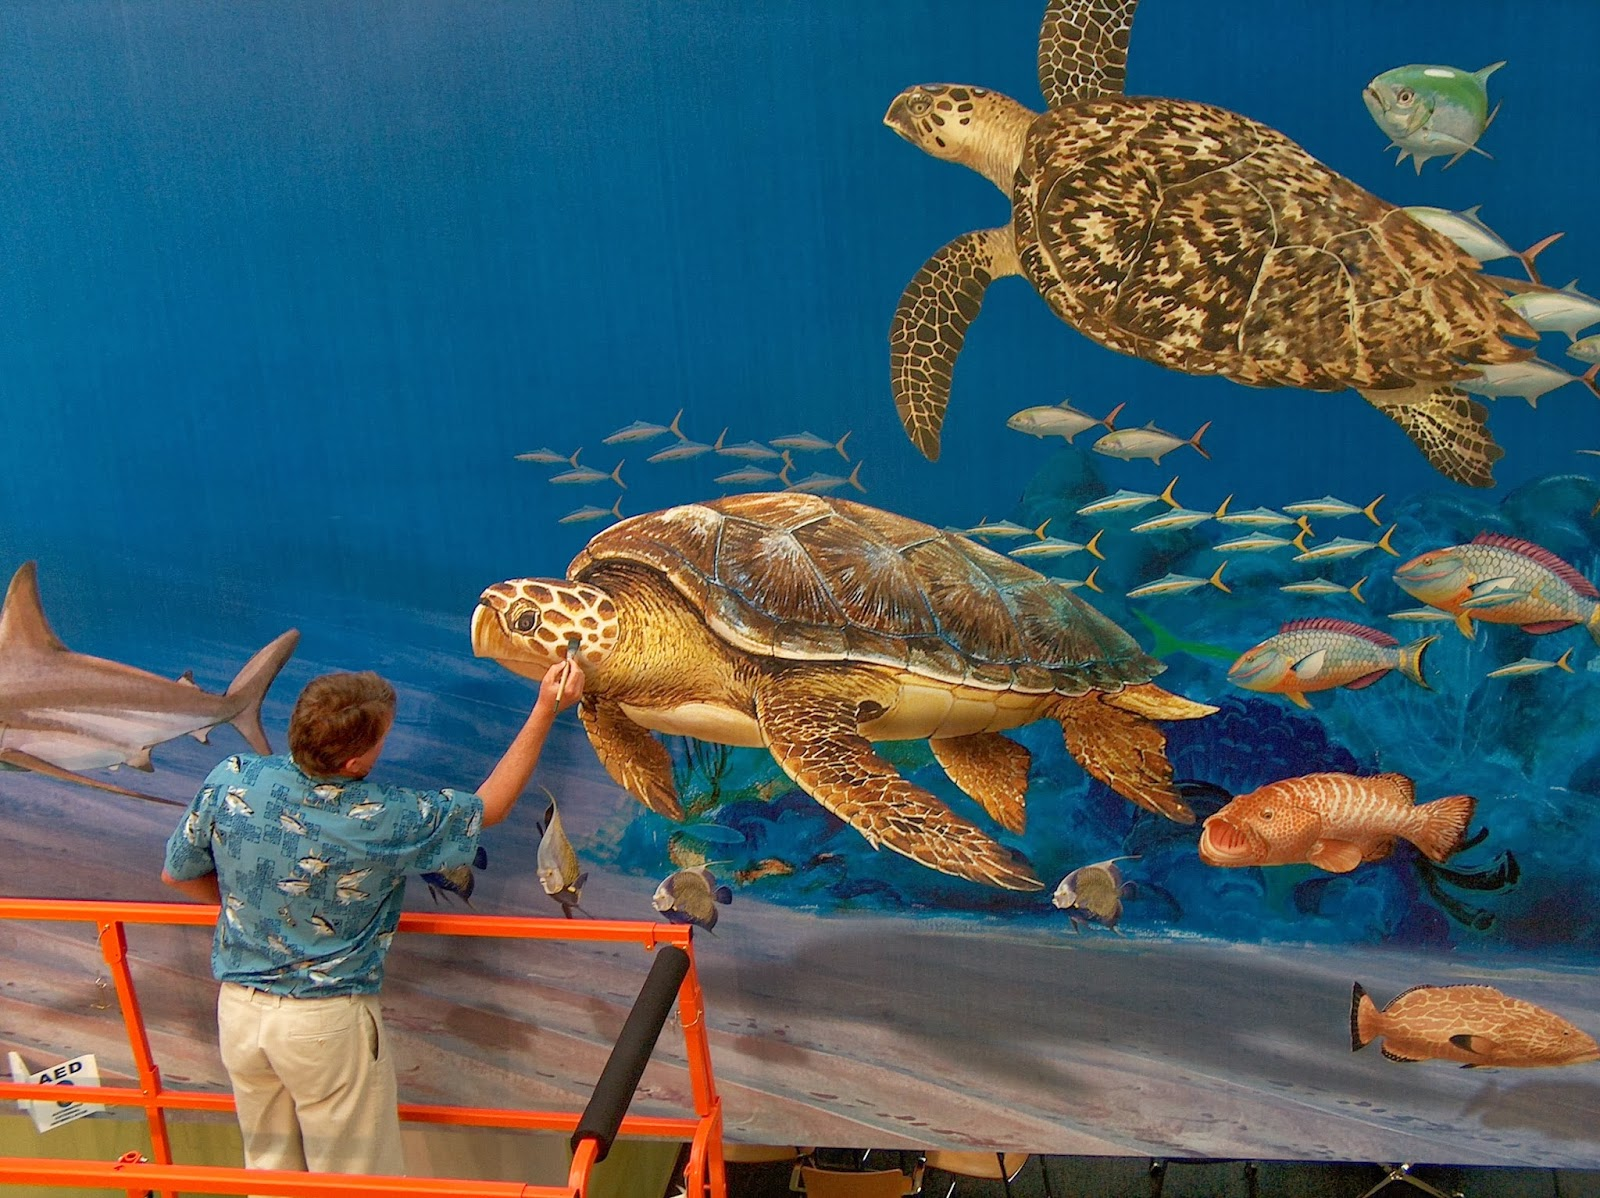 biography and artwork of guy harvey Wyland headlines 08/31/2016 world  george c schellenger takes you into the world of sharks through the eyes of wyland, guy harvey and jim  wyland artwork to.